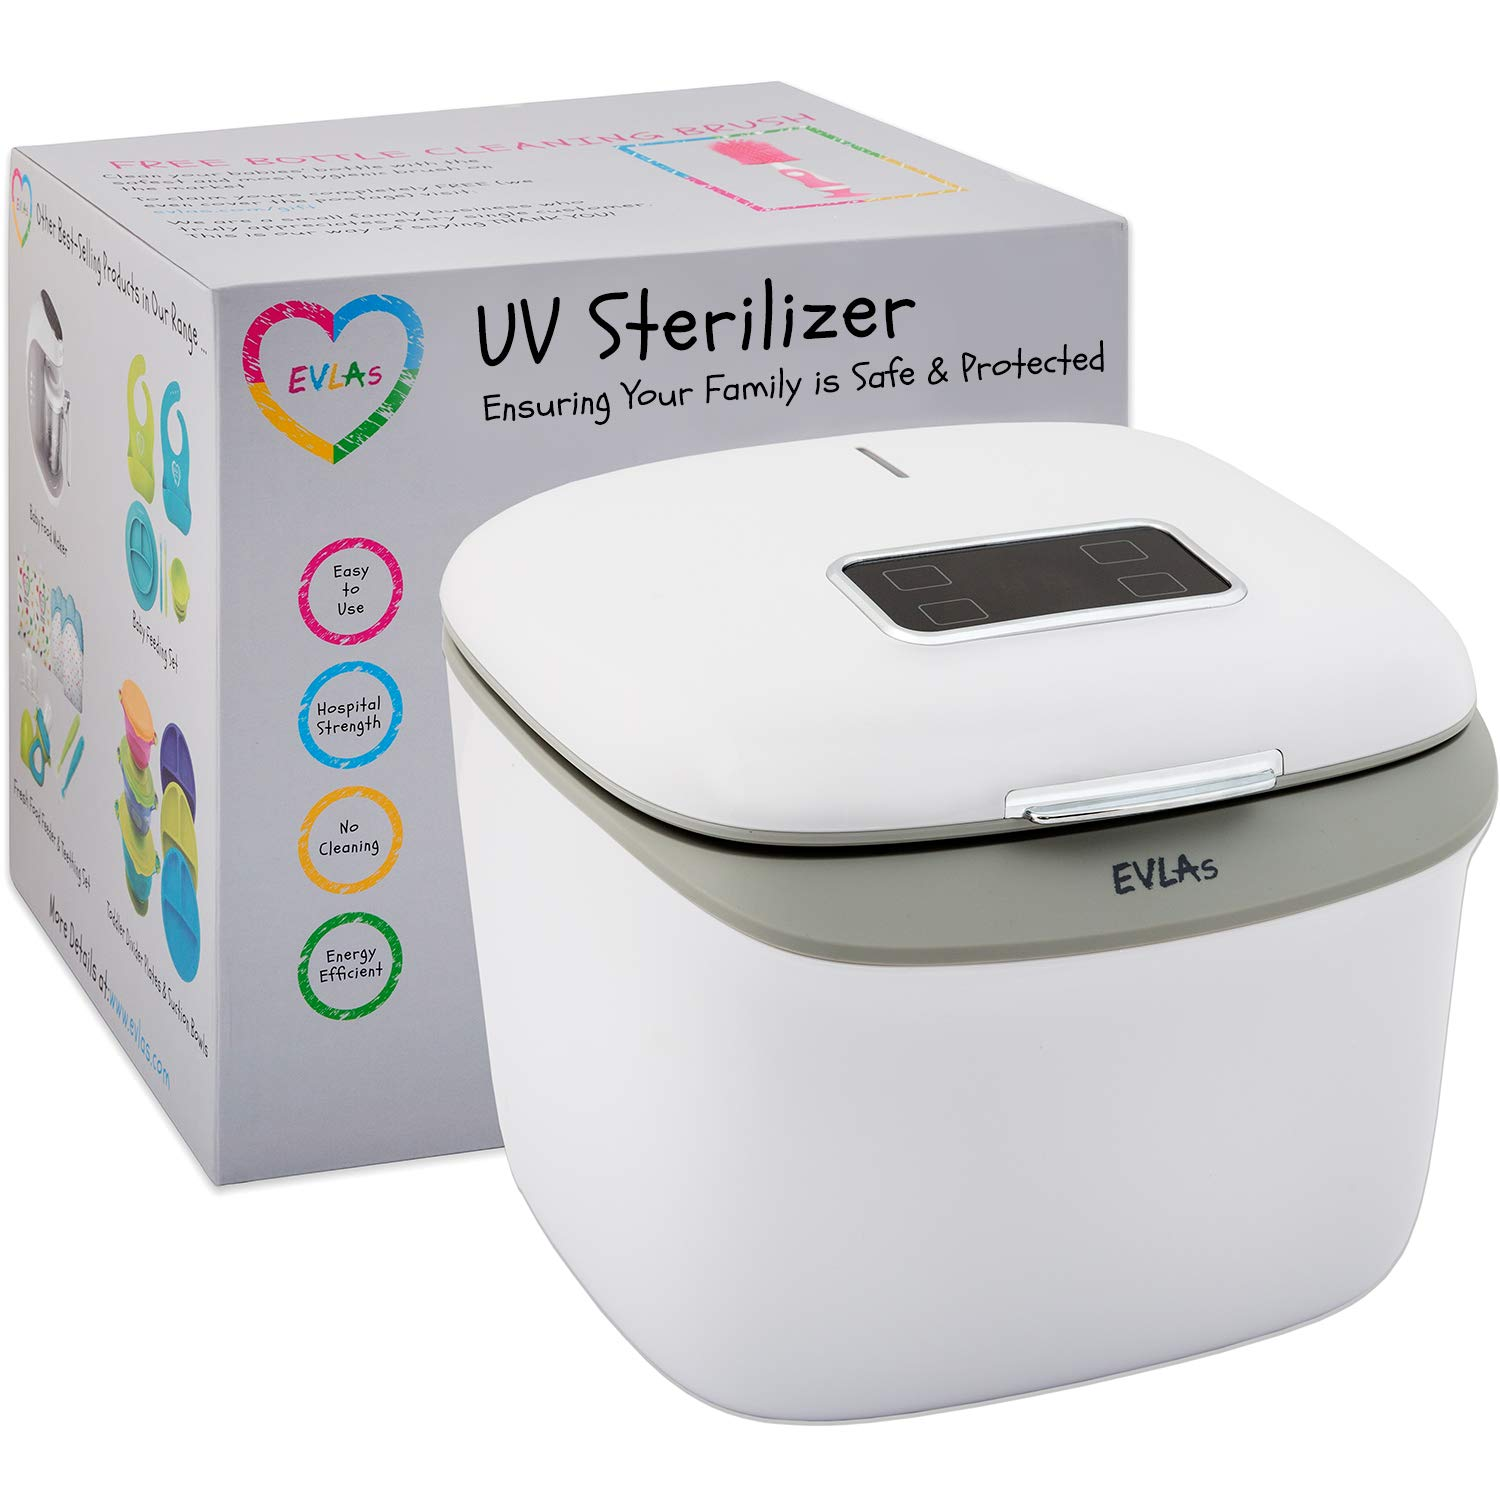 UV Sanitizer | UV Sterilizer Box | Sterilizes in Minutes with No Cleaning Required | Touch Screen Control | FCC Approved